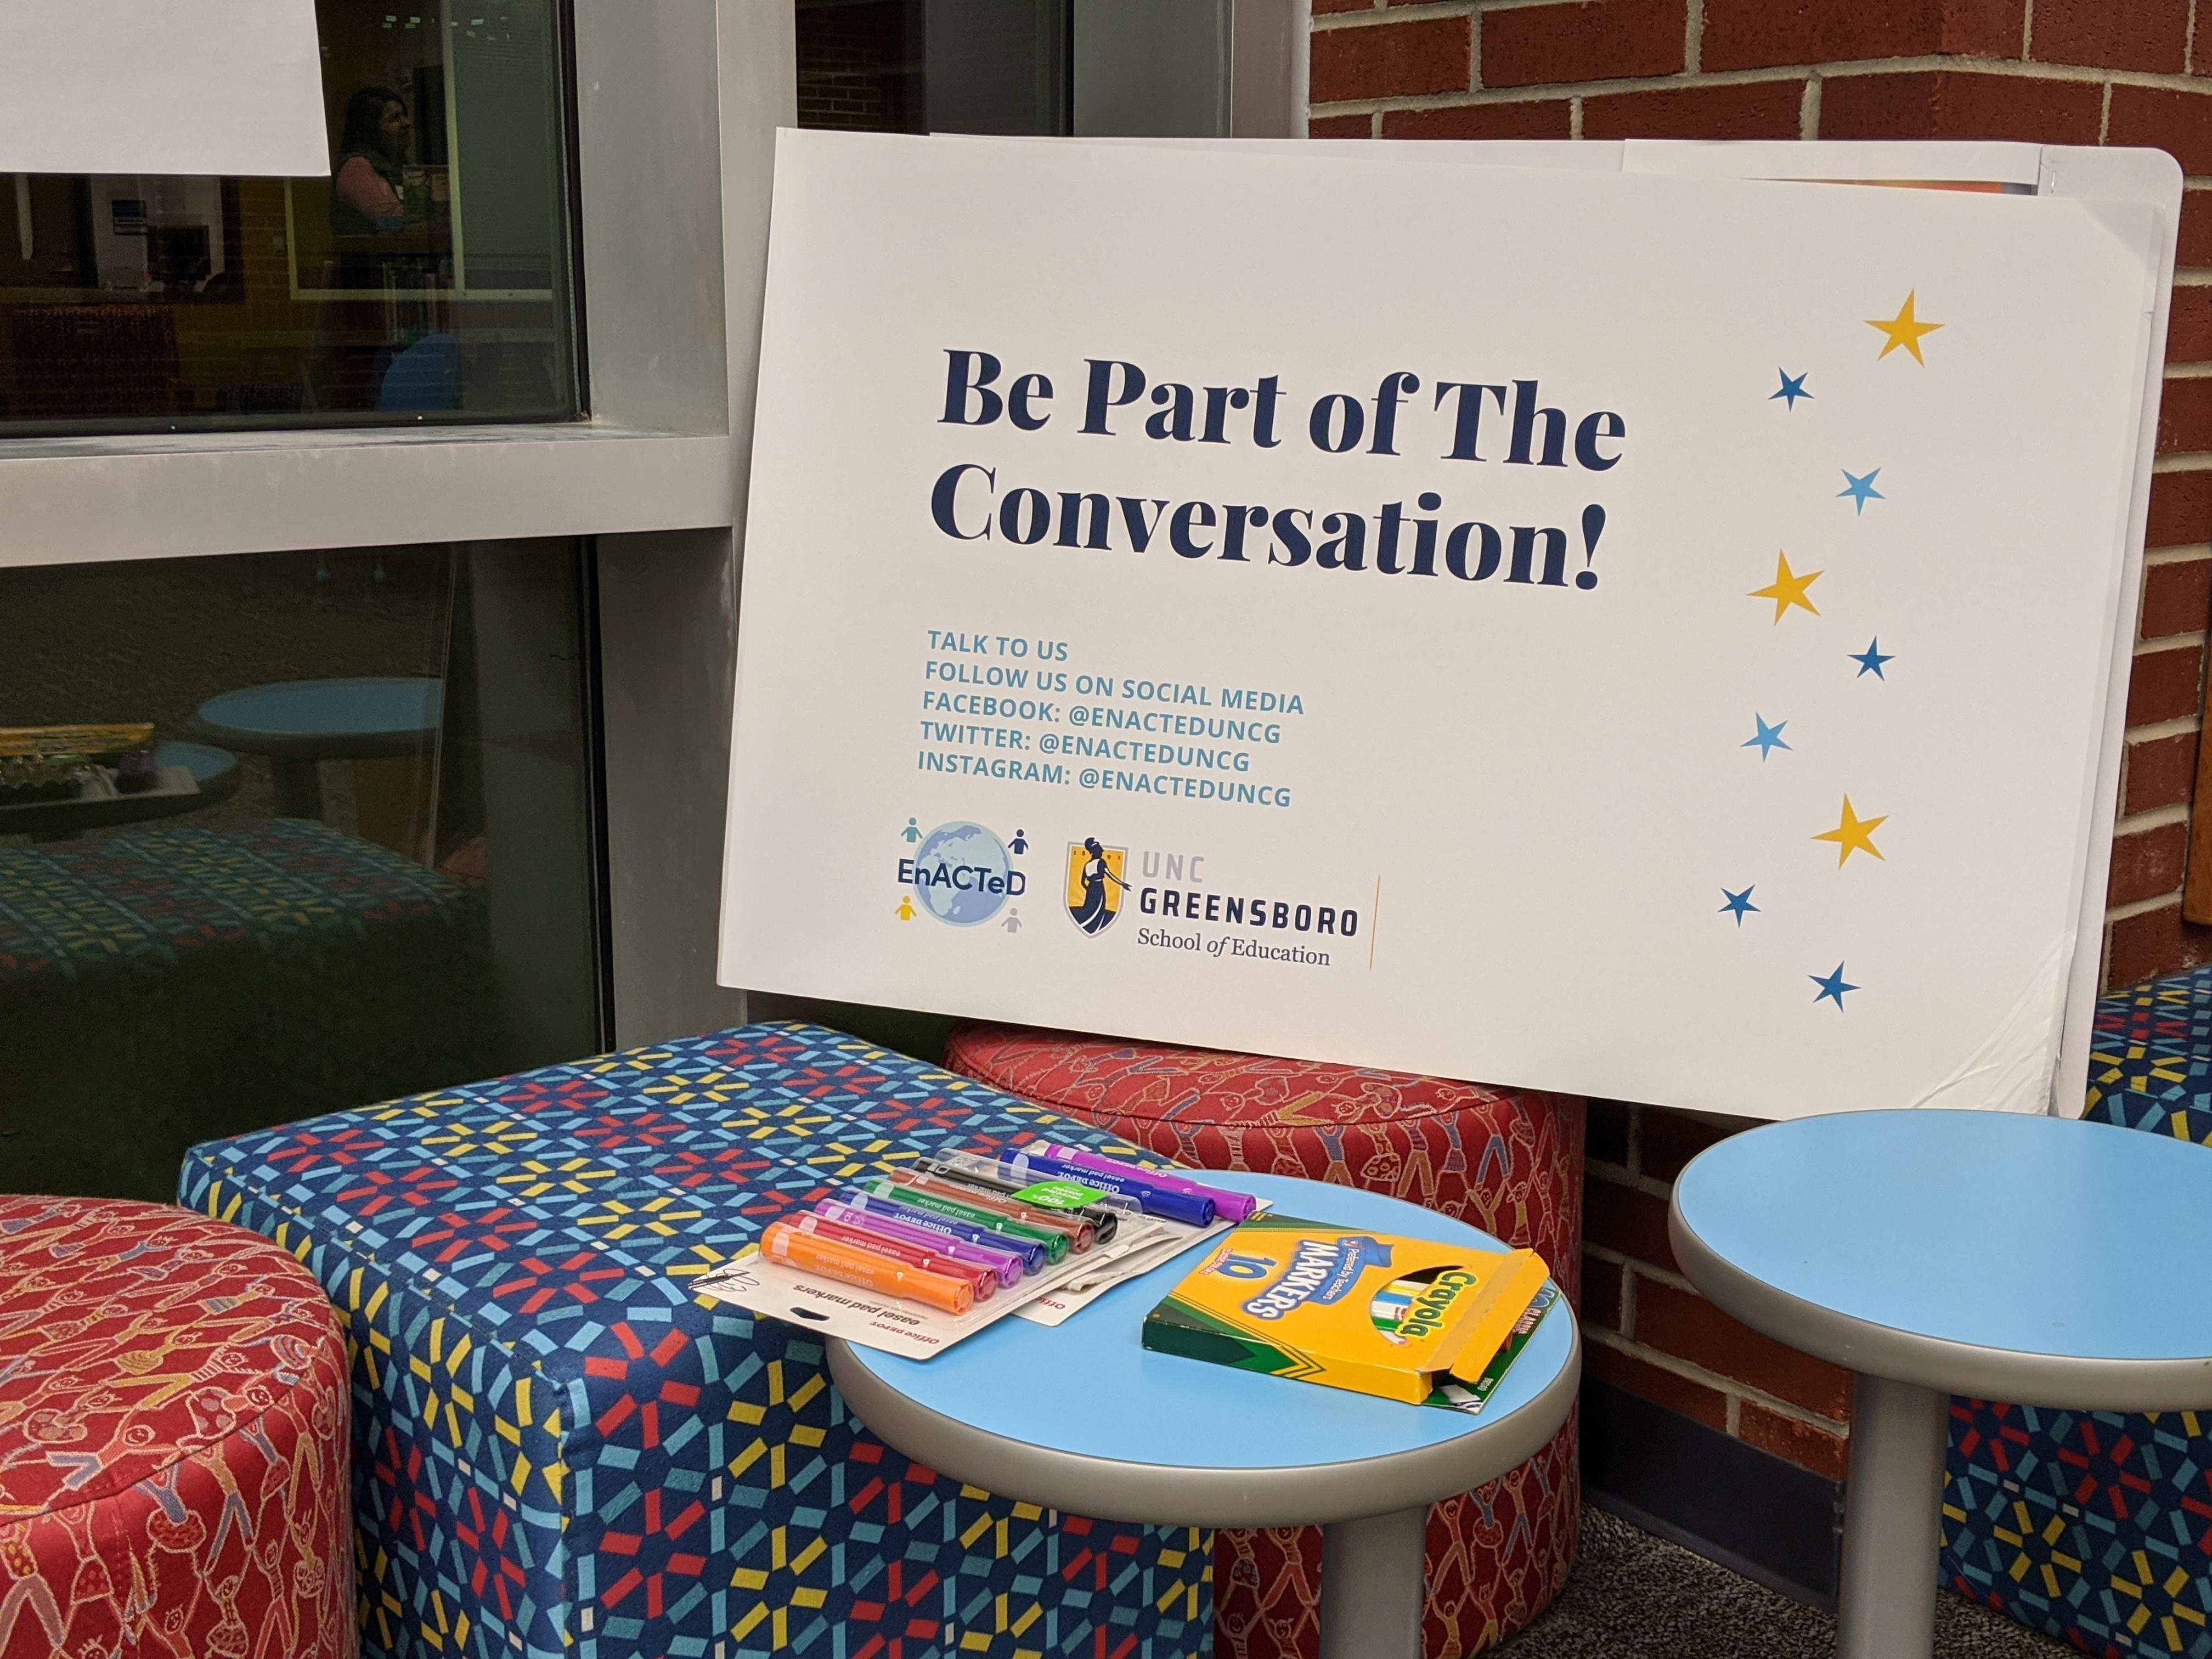 Be Part of the Conversation!